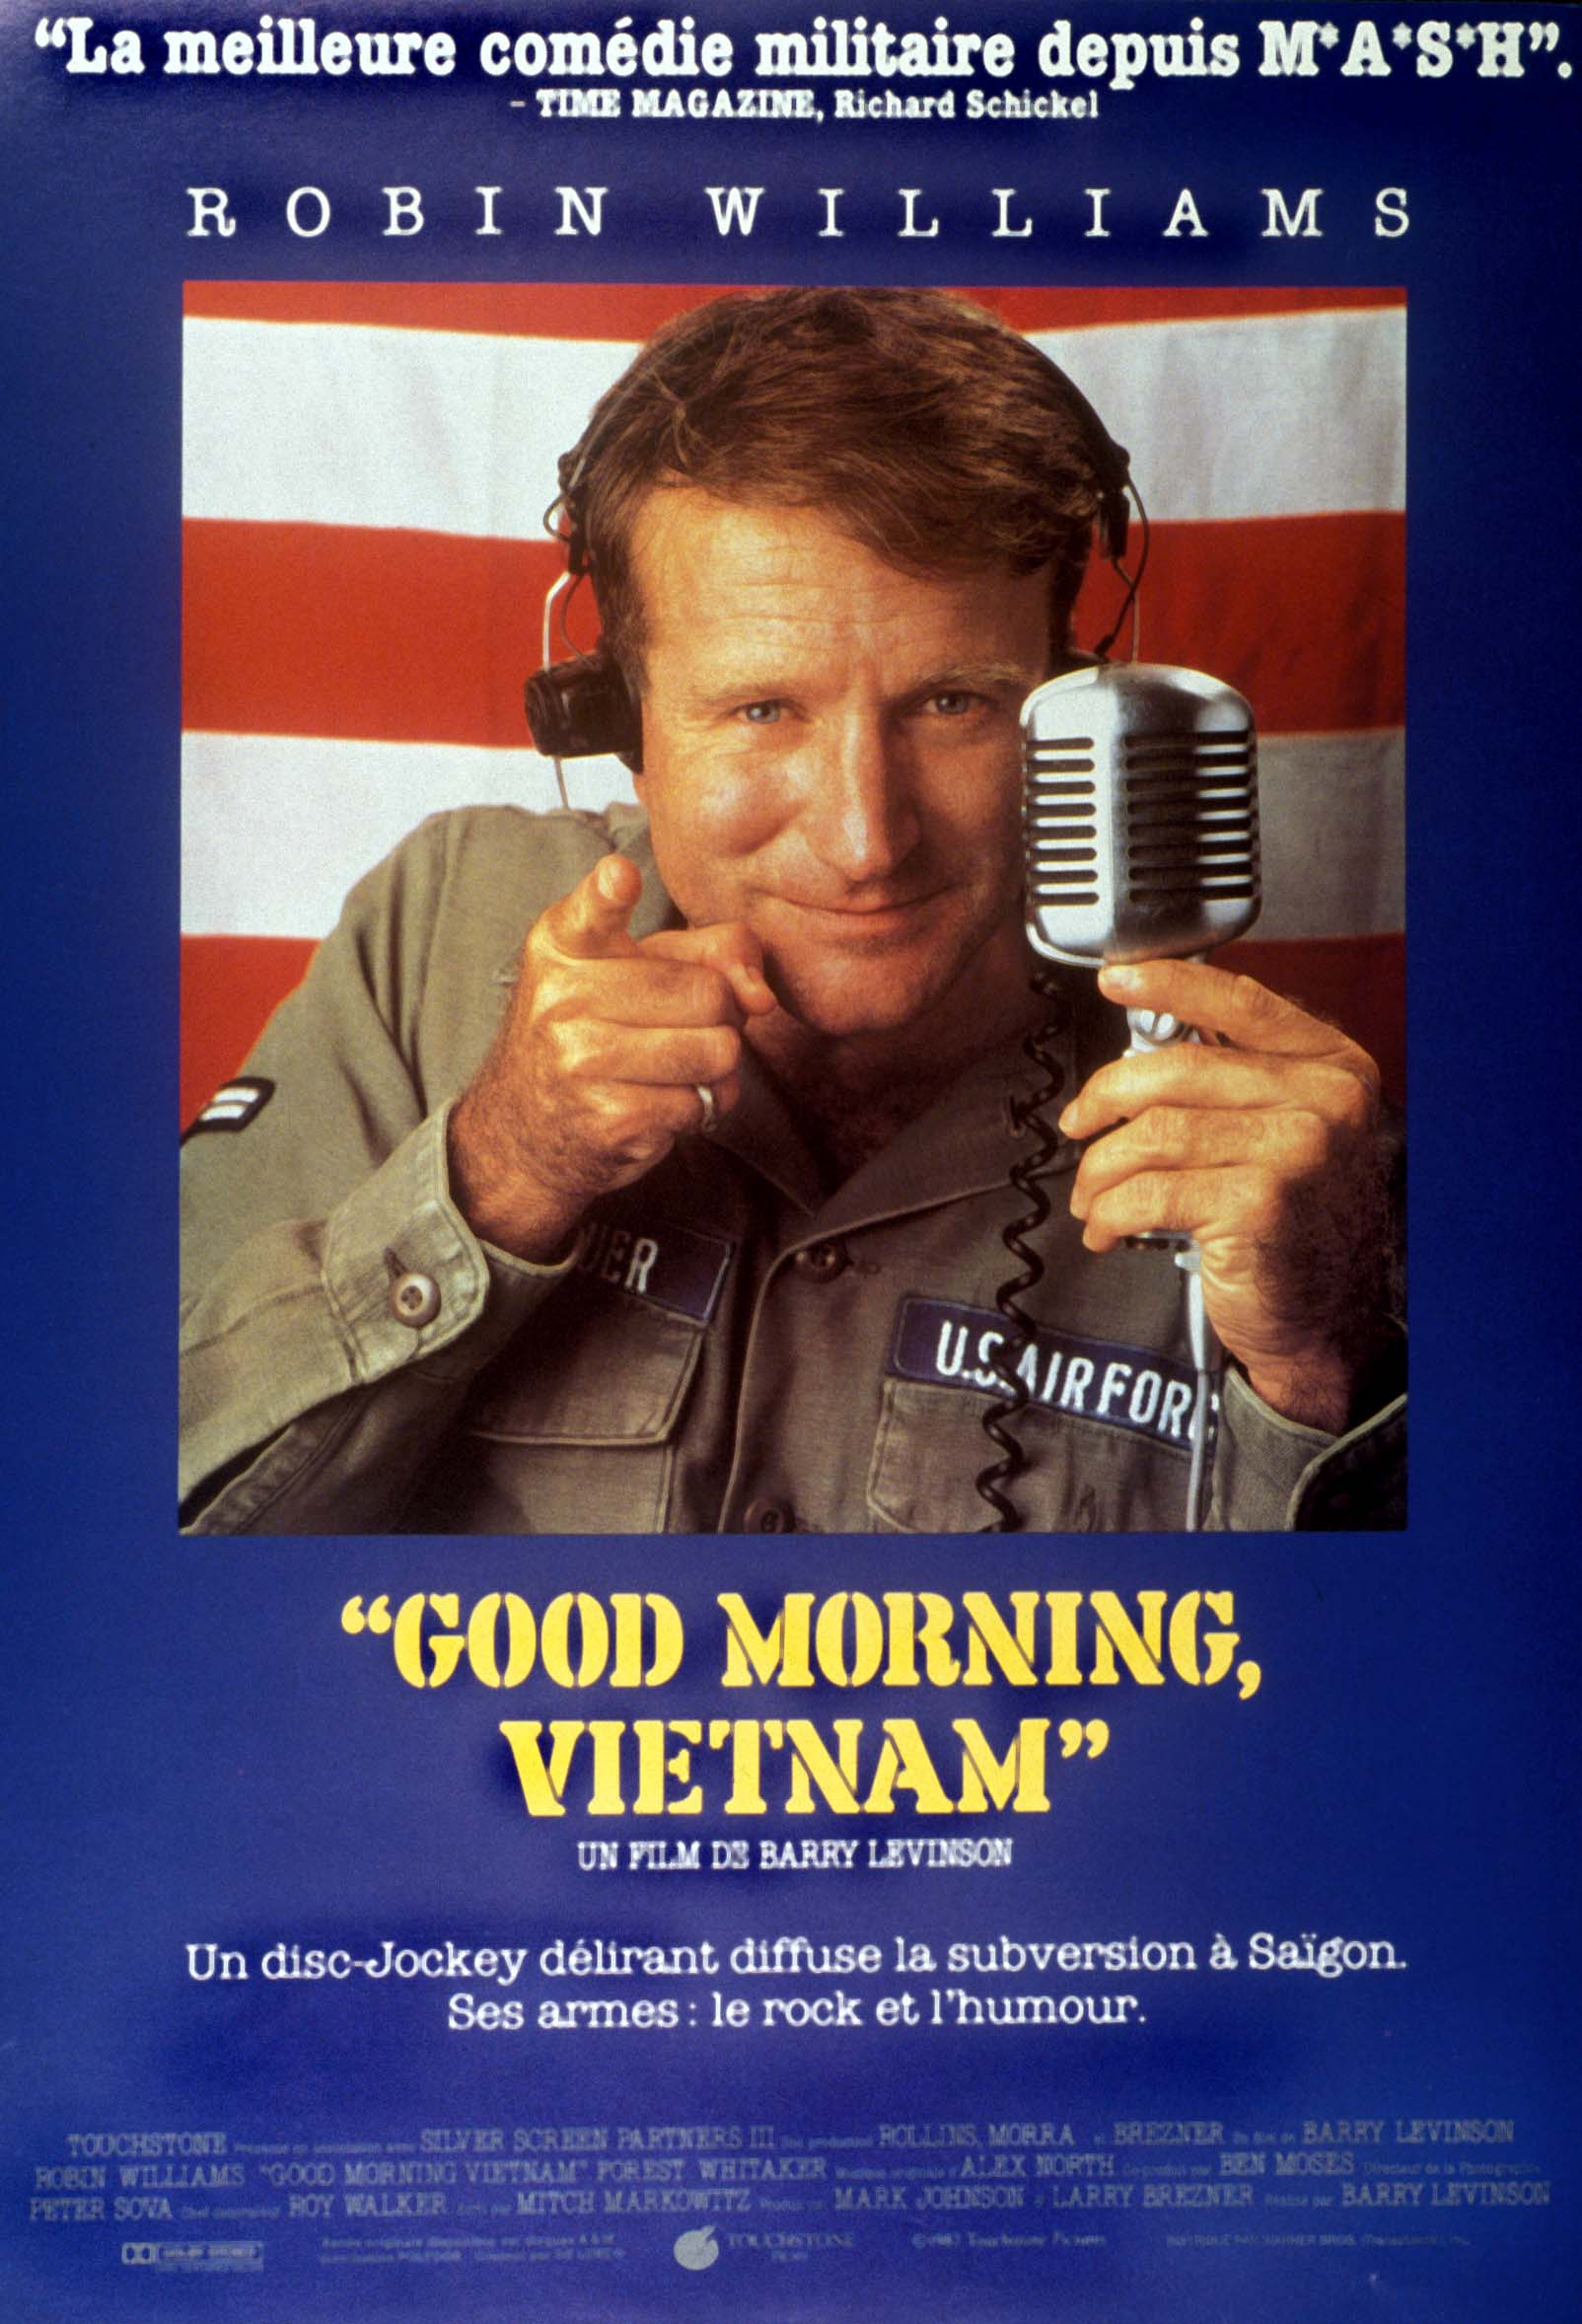 Good Morning Vietnam Kanye : Good morning vietnam robin williams photo